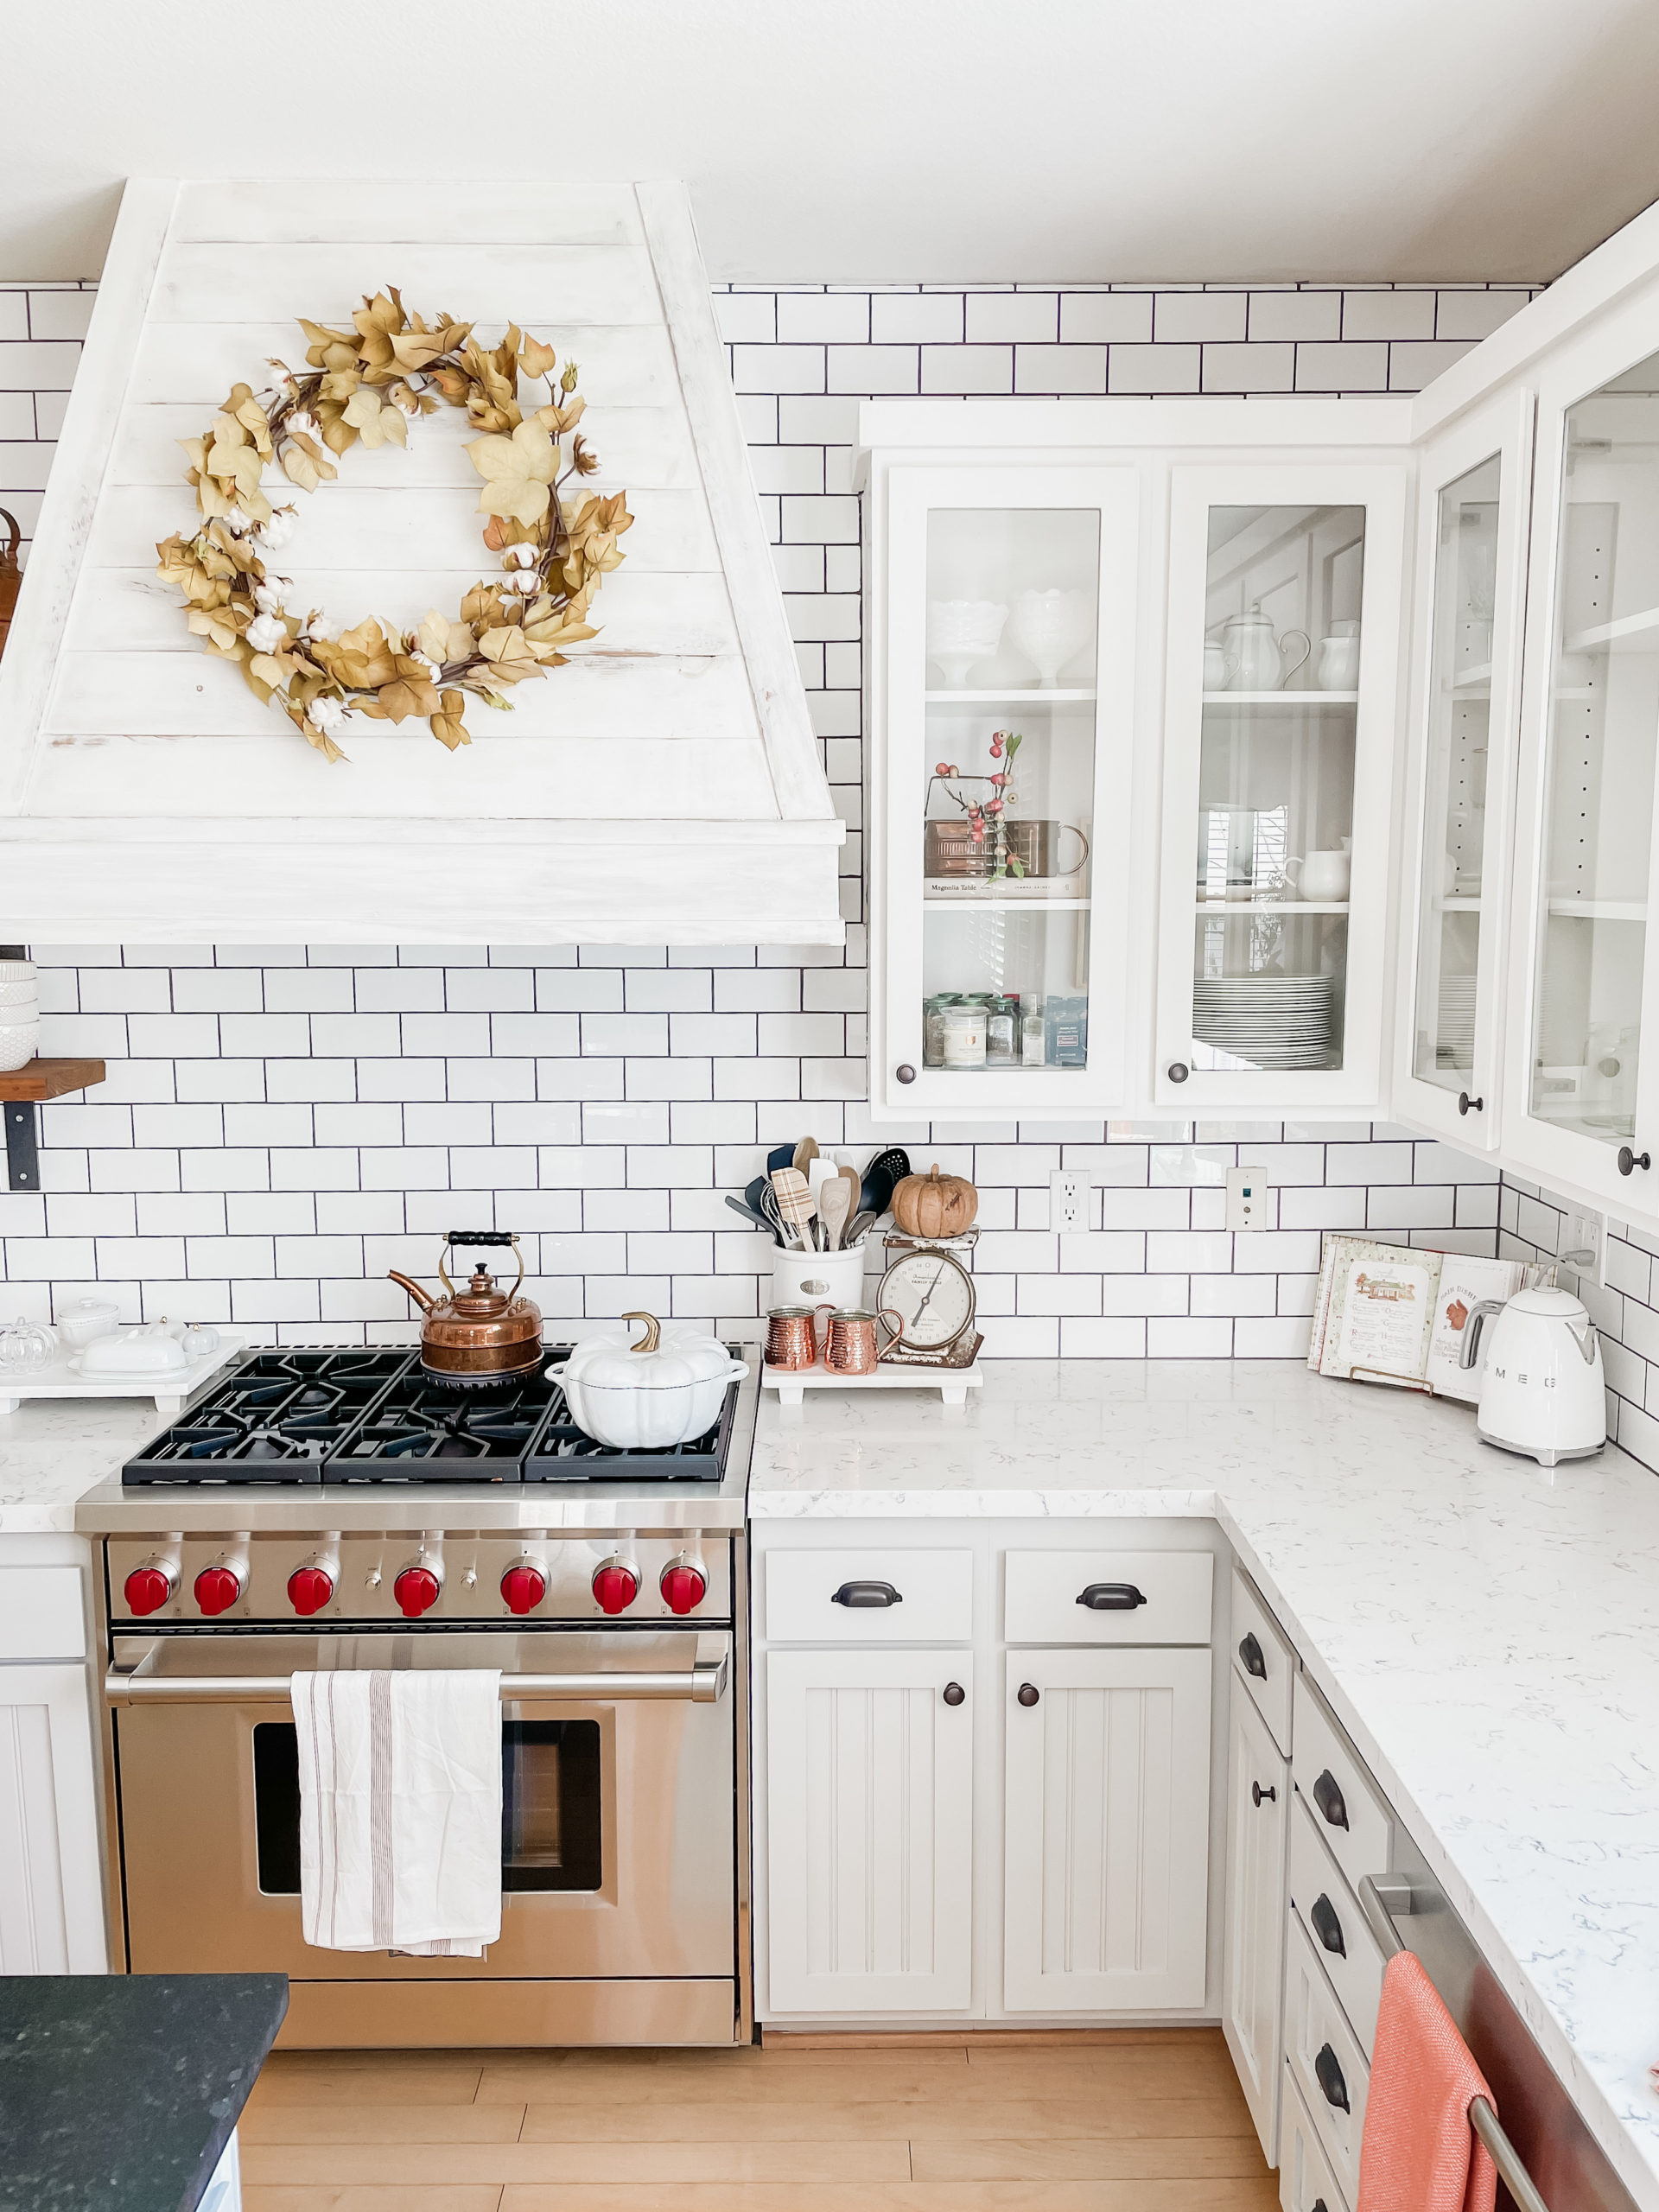 How to add simple fall decor to the kitchen. Includes neutral fall decor ideas. Walls are painted Sherwin Williams accessible beige. Photos have quartz countertops and and soapstone countertops with white subway tile backsplash. .